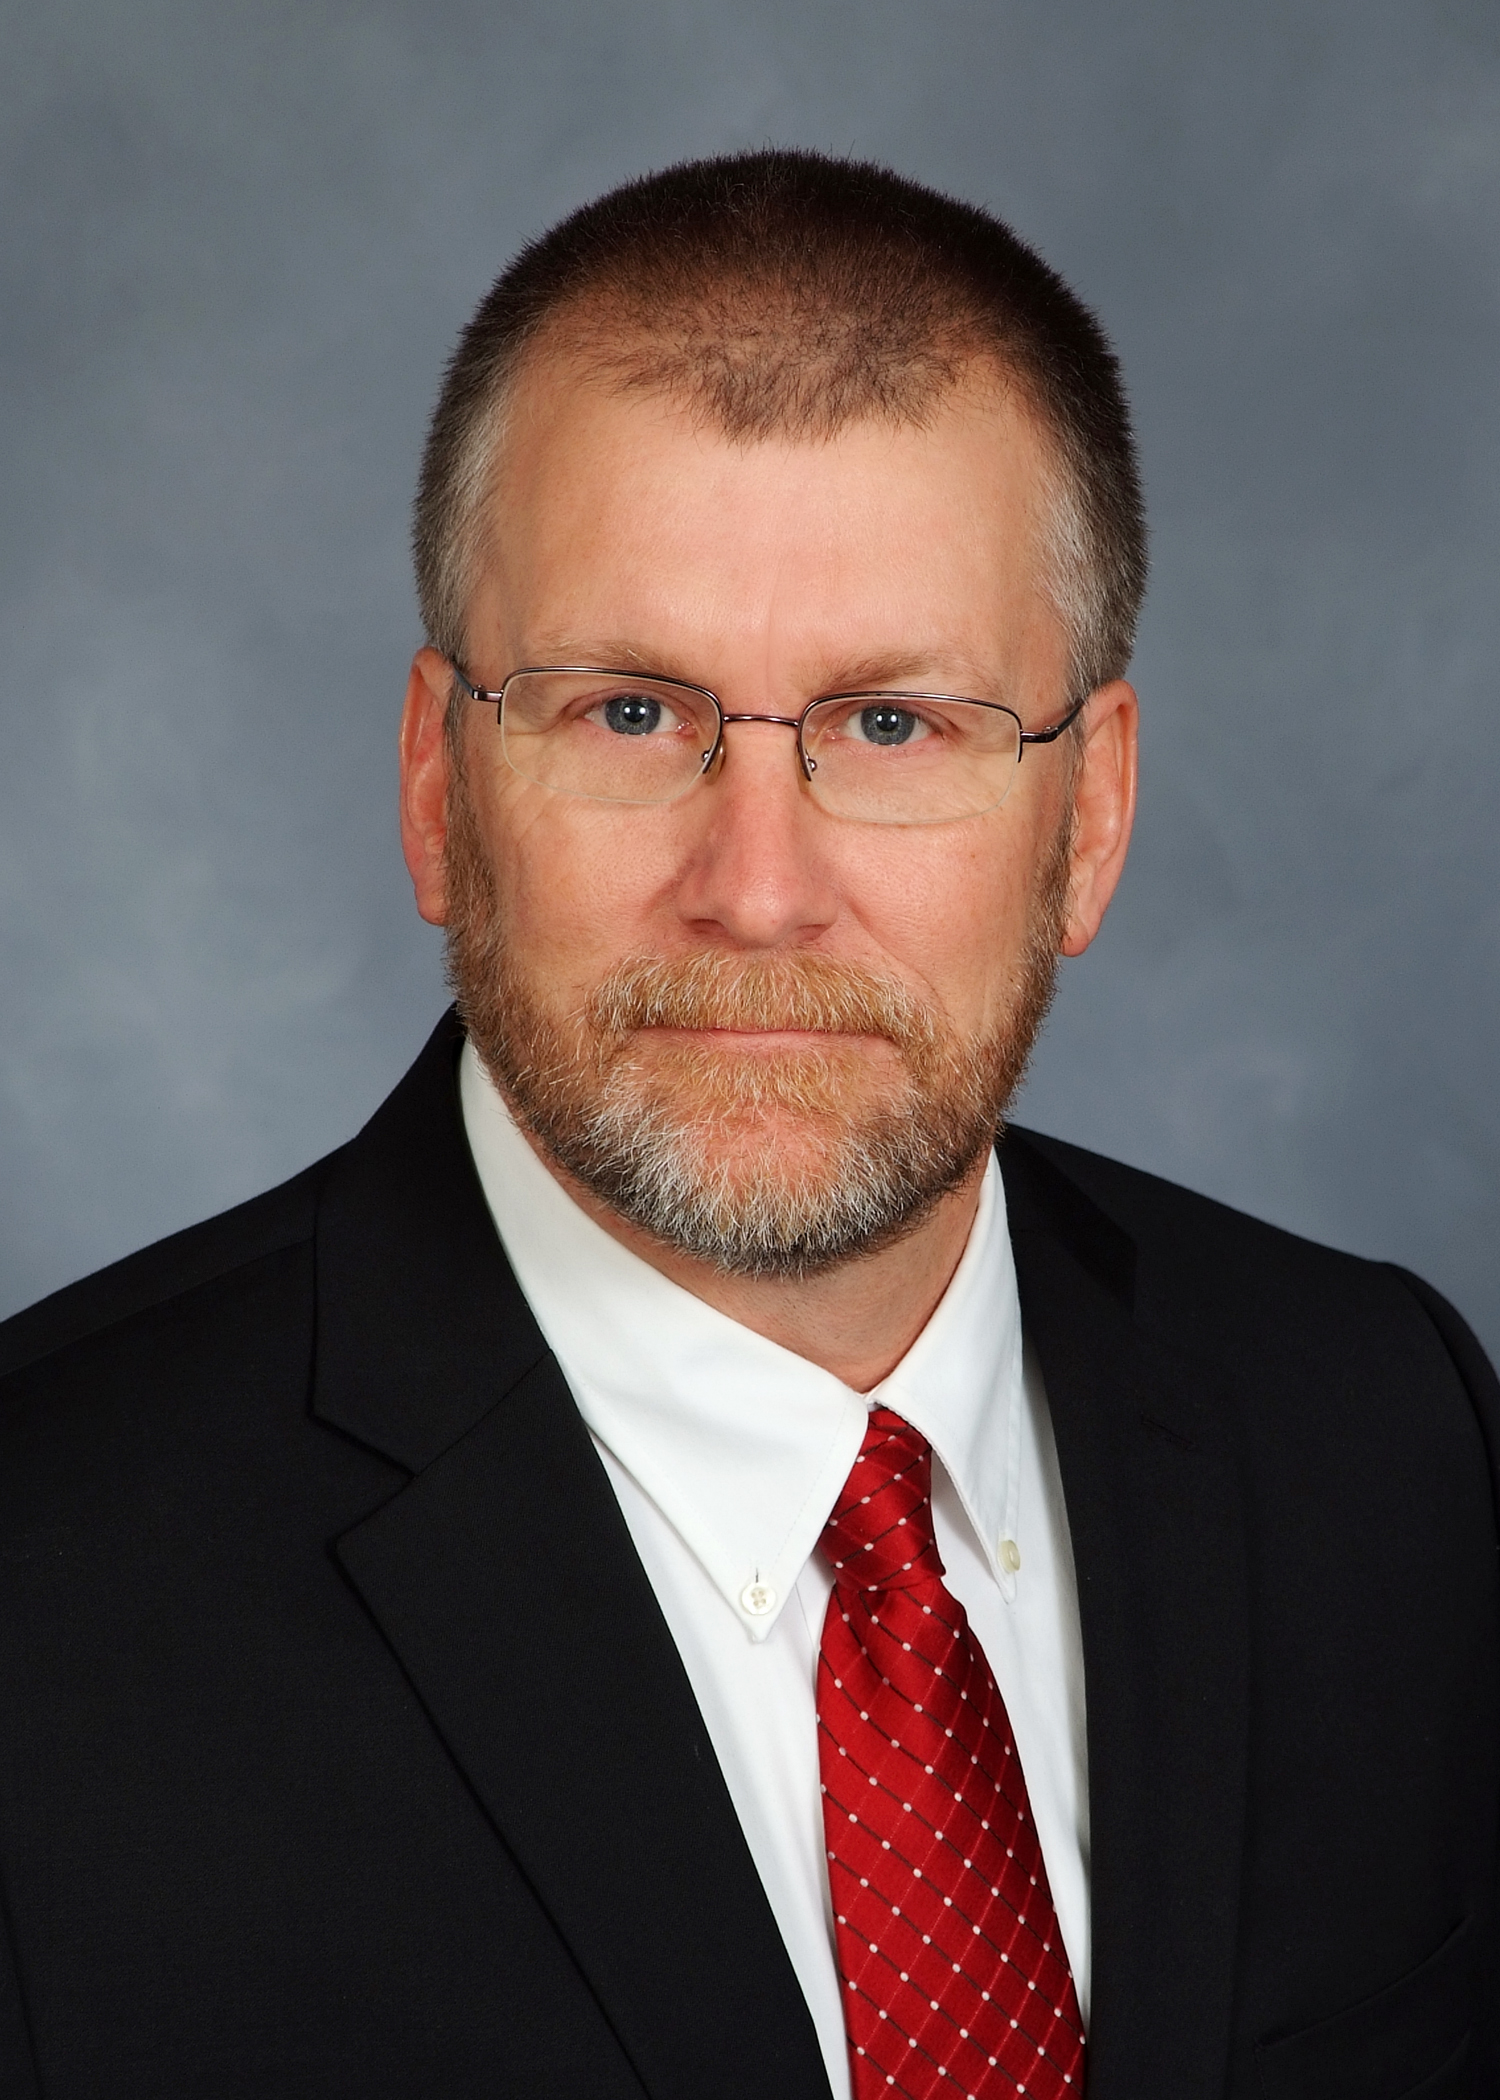 Headshot of Kondex President Keith Johnson in a suit and tie